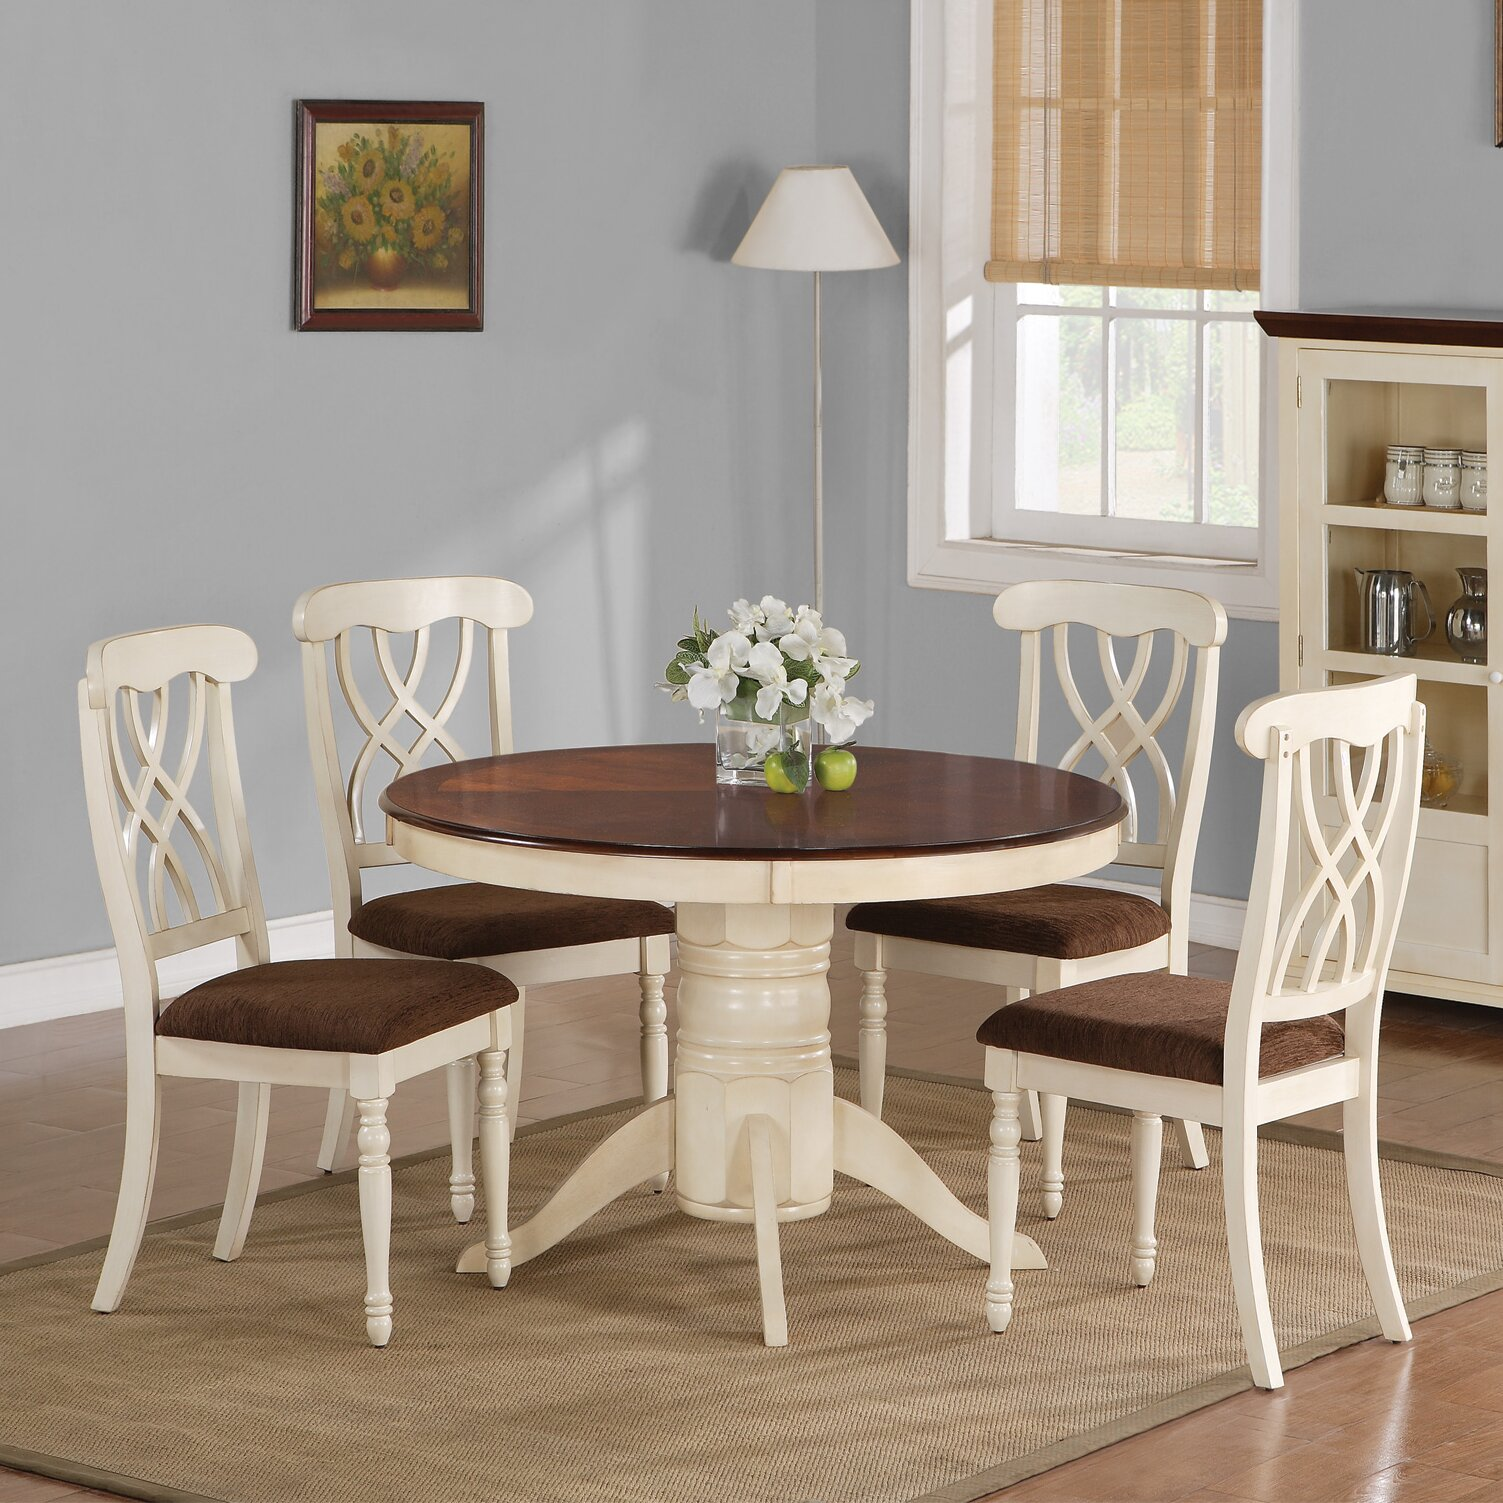 Wildon home stephens dining table reviews for Wildon home dining